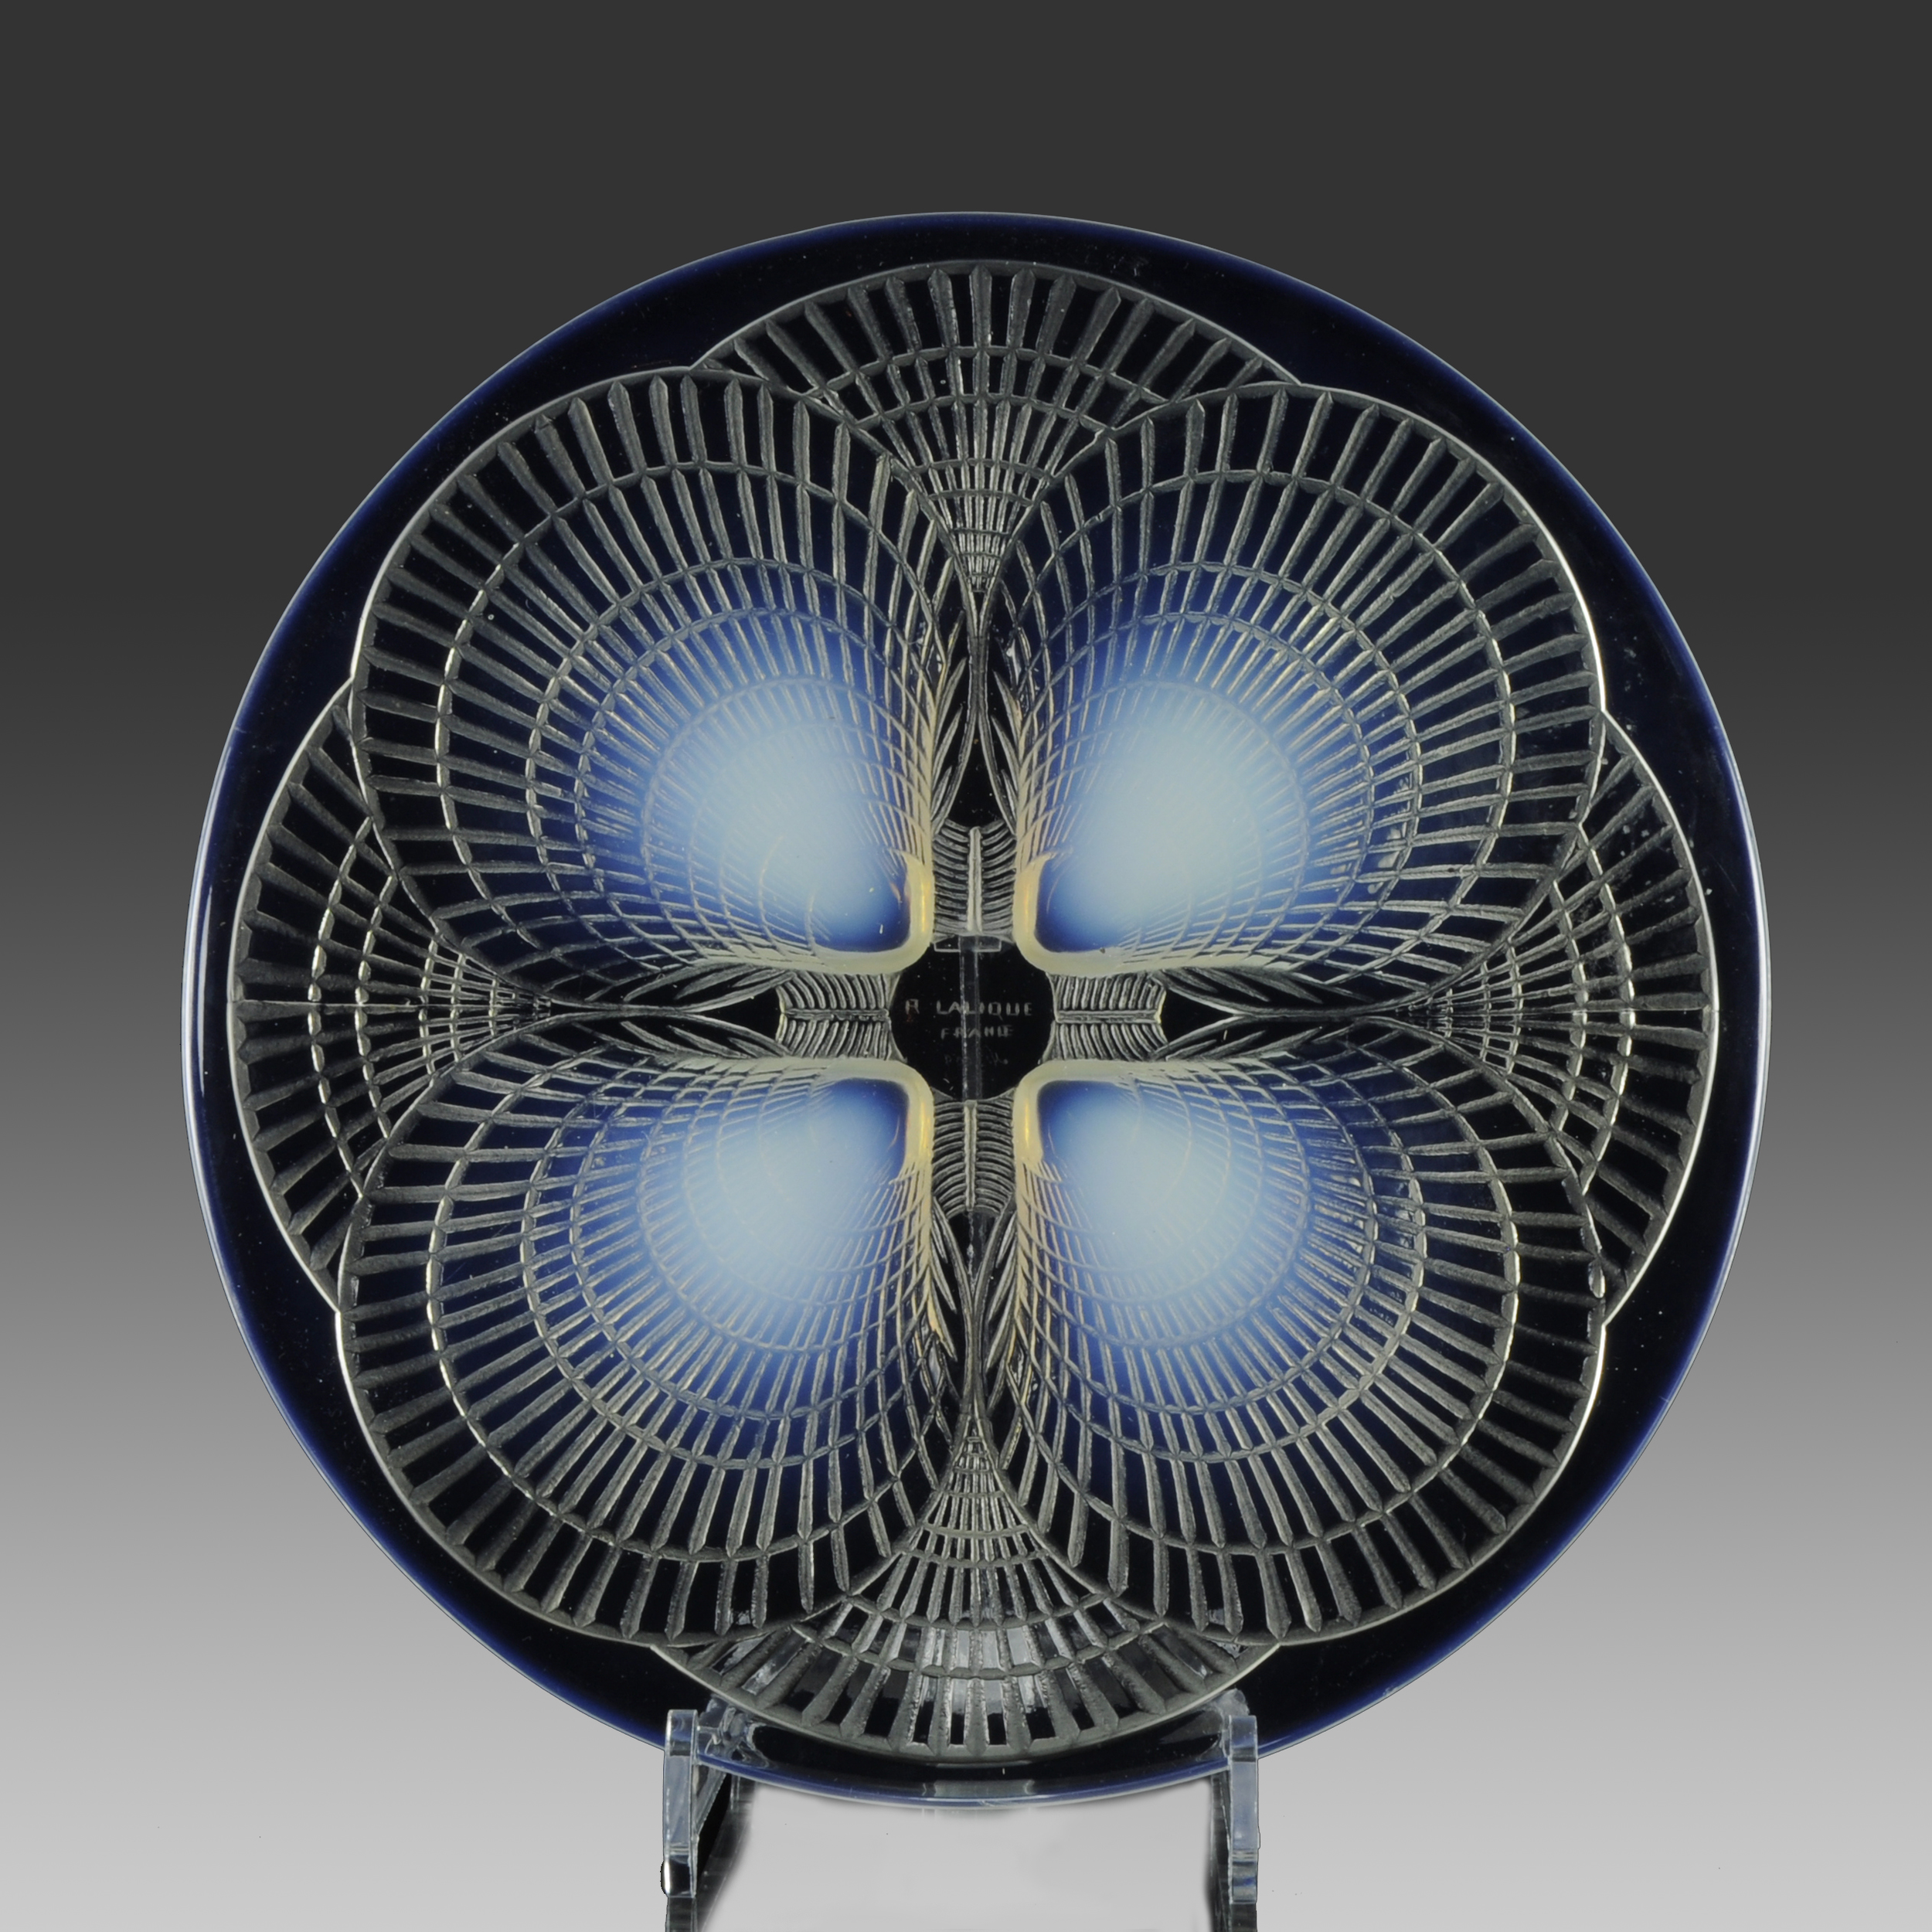 Stunning Art Deco glass signed by René Lalique; a plate with frosted surface effect and raised scallop shells in a deep sky blue opalescent colour. Price £850. From Hickmet Fine Arts    (hickmet.com)